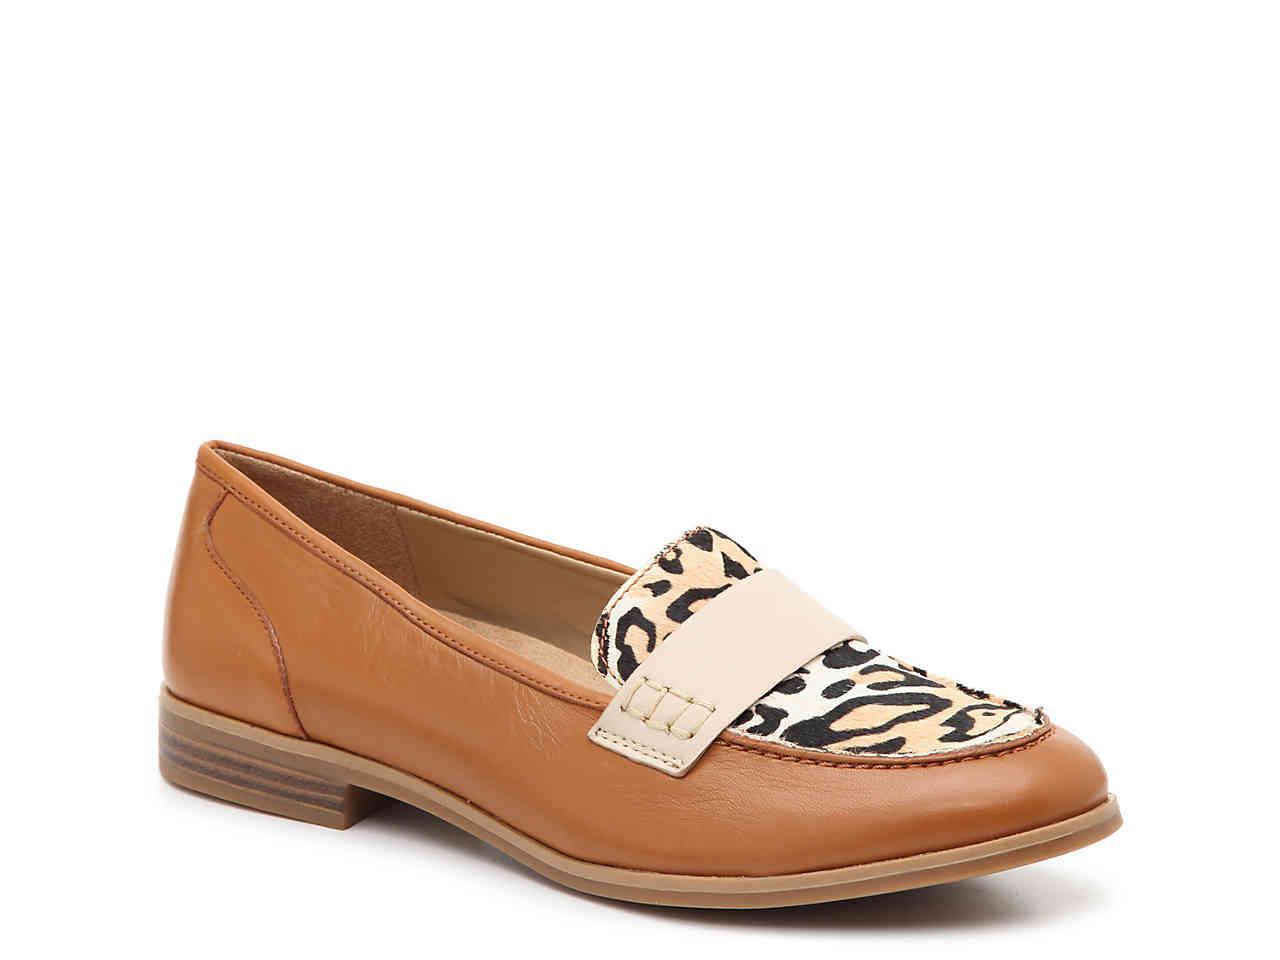 d7d124c5a2c Lyst - Naturalizer Veronica Loafer in Brown